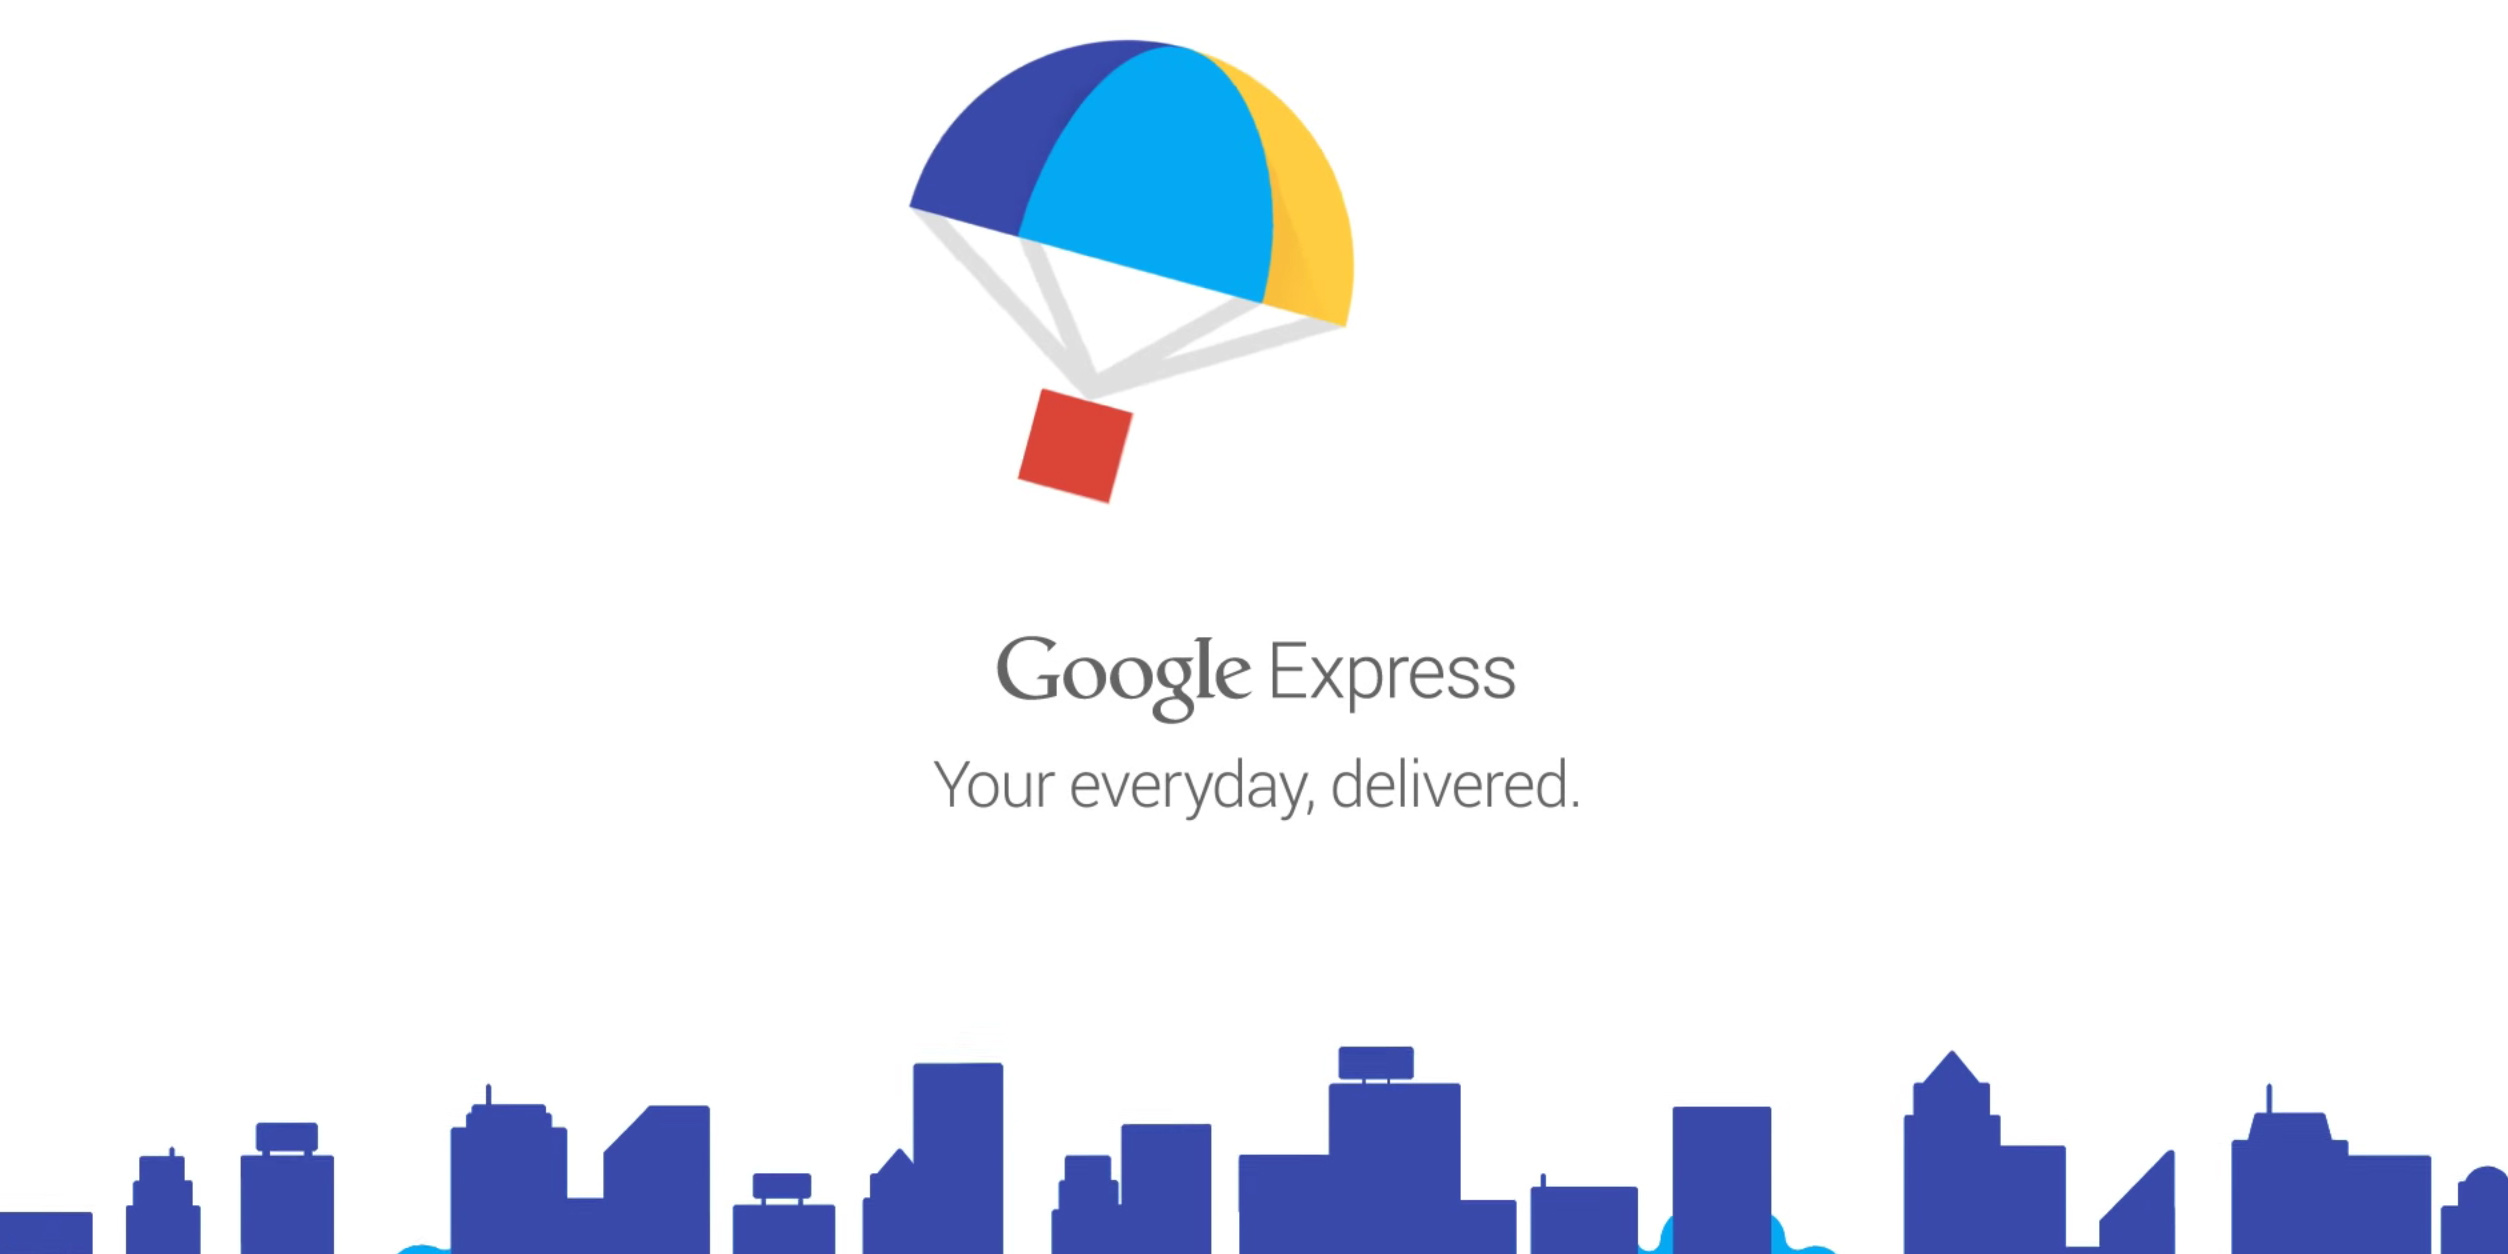 What Is Google Express And How It Works? - Image 1